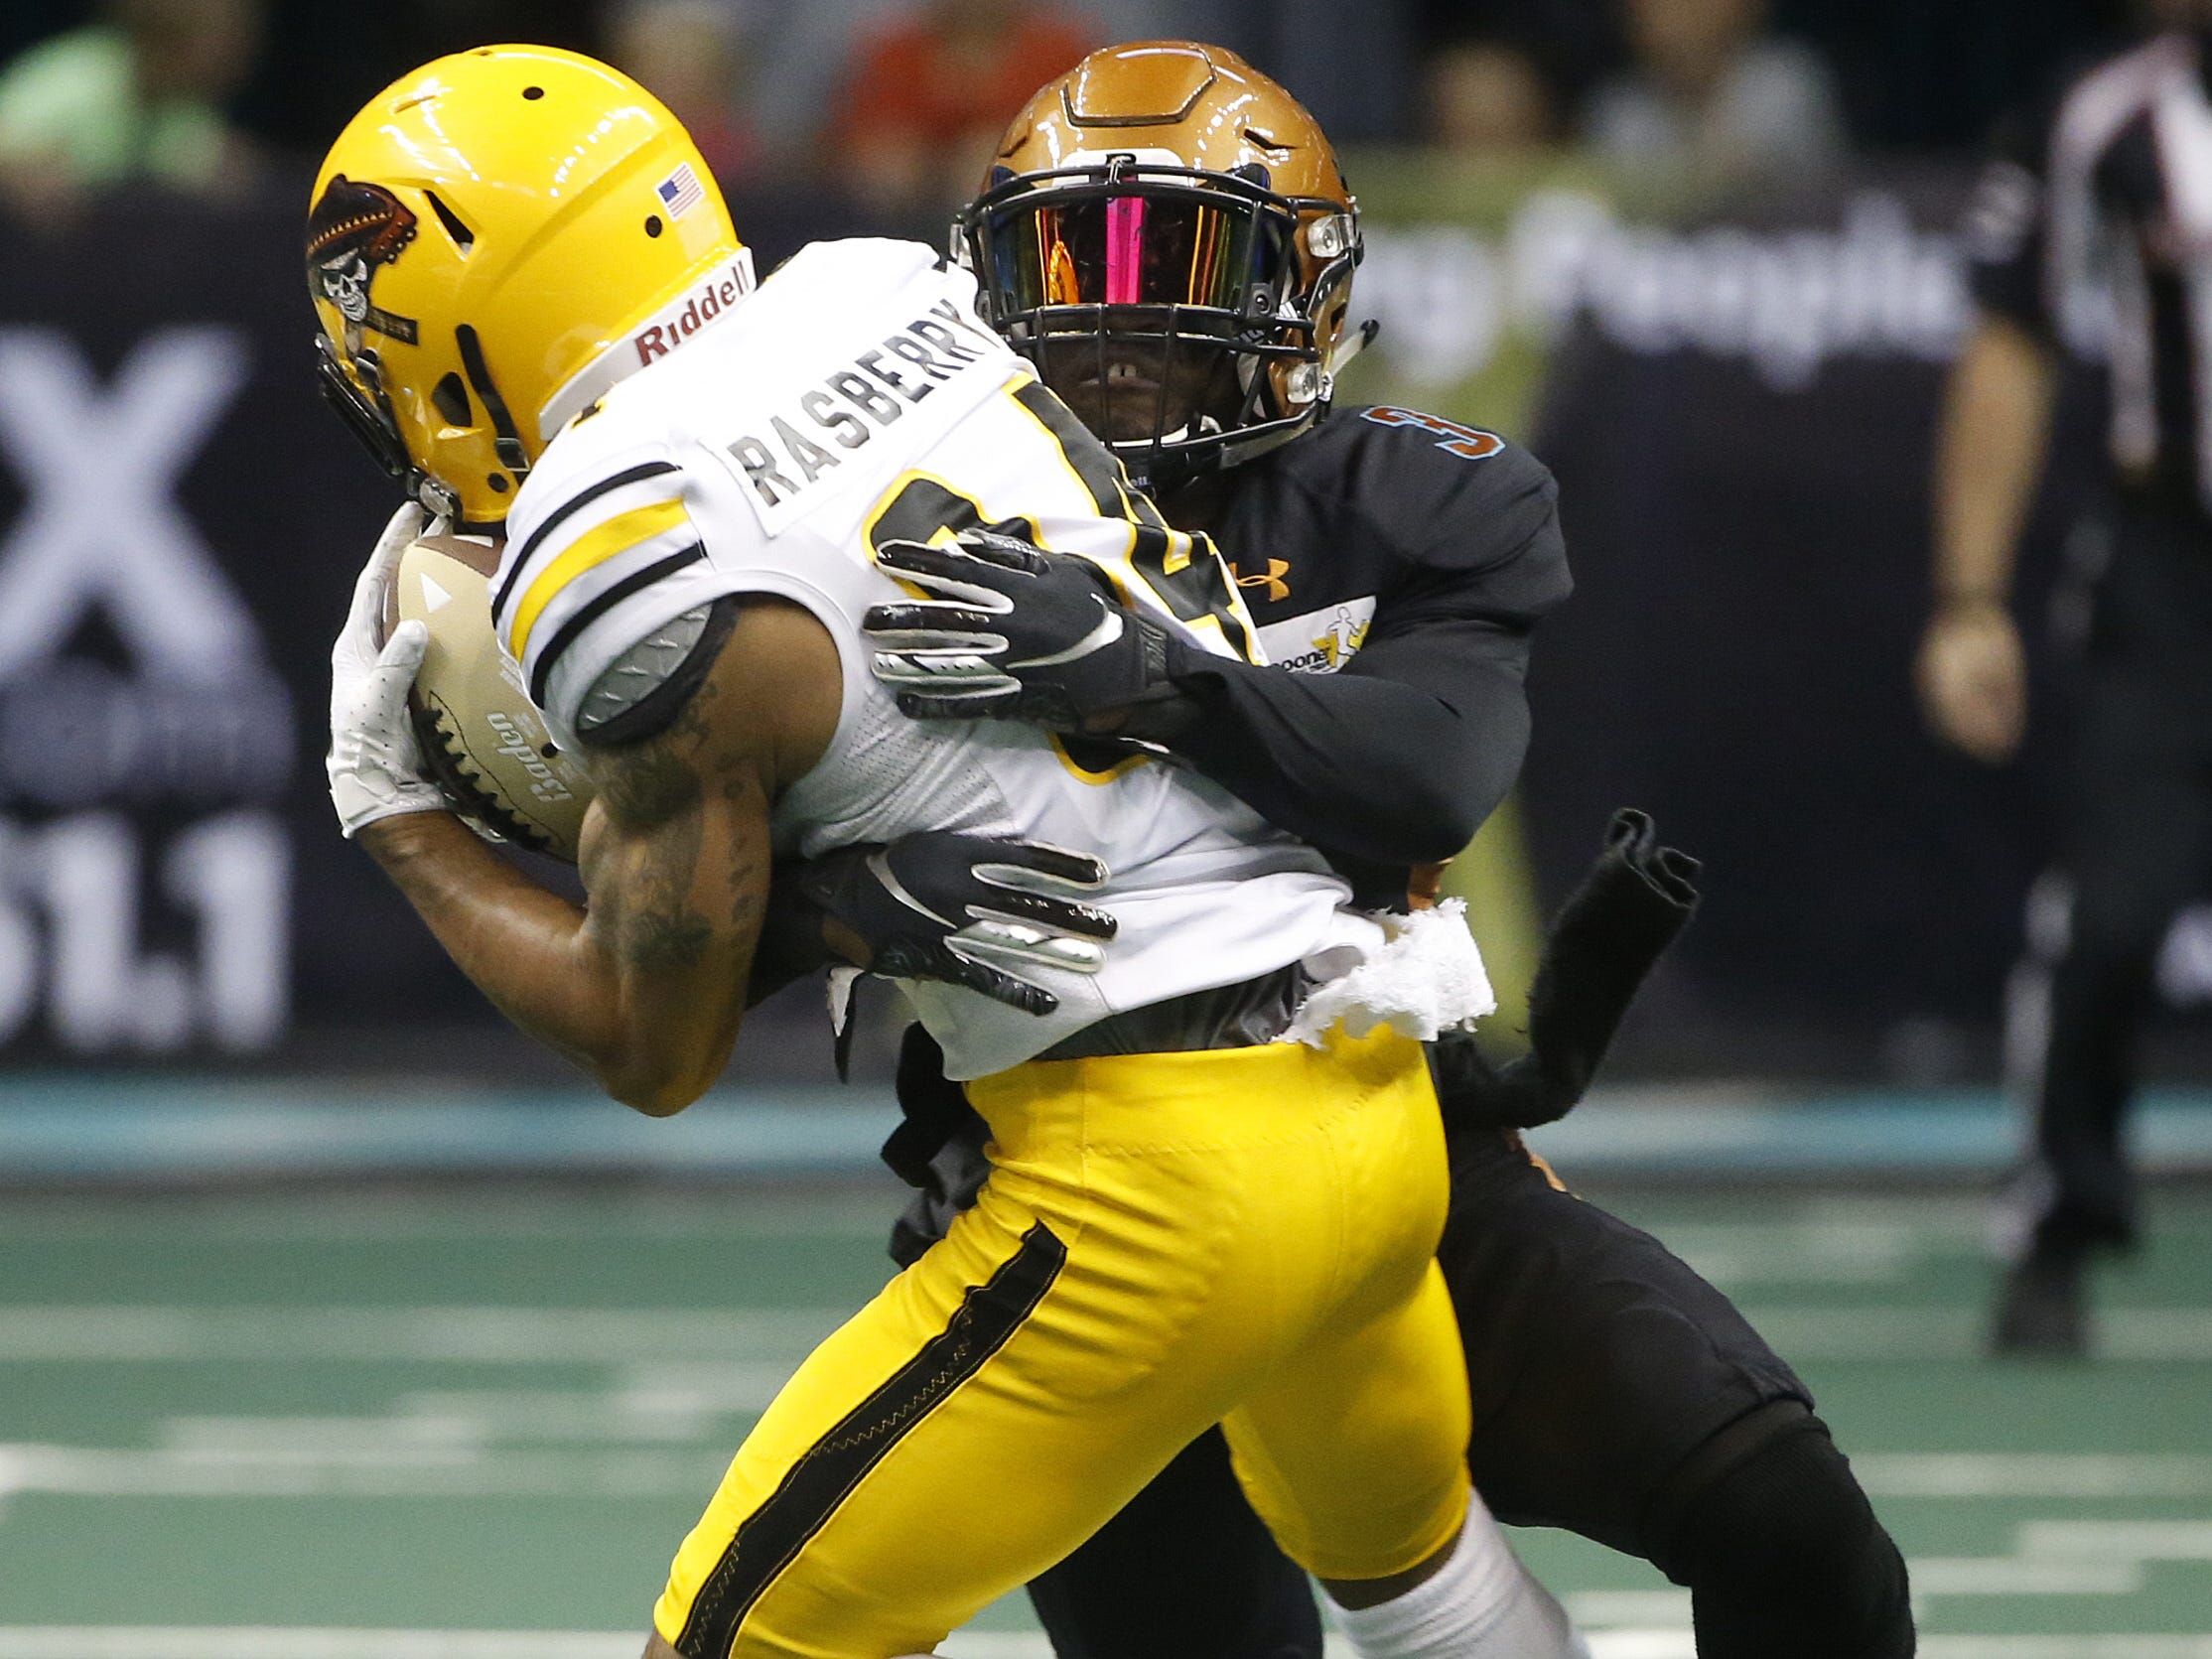 Rattlers' Allen Chapman (3) tackles Sugar Skulls Donovan Rasberry (84) during the first half at Talking Stick Resort Arena in Phoenix, Ariz. on March 16, 2019.